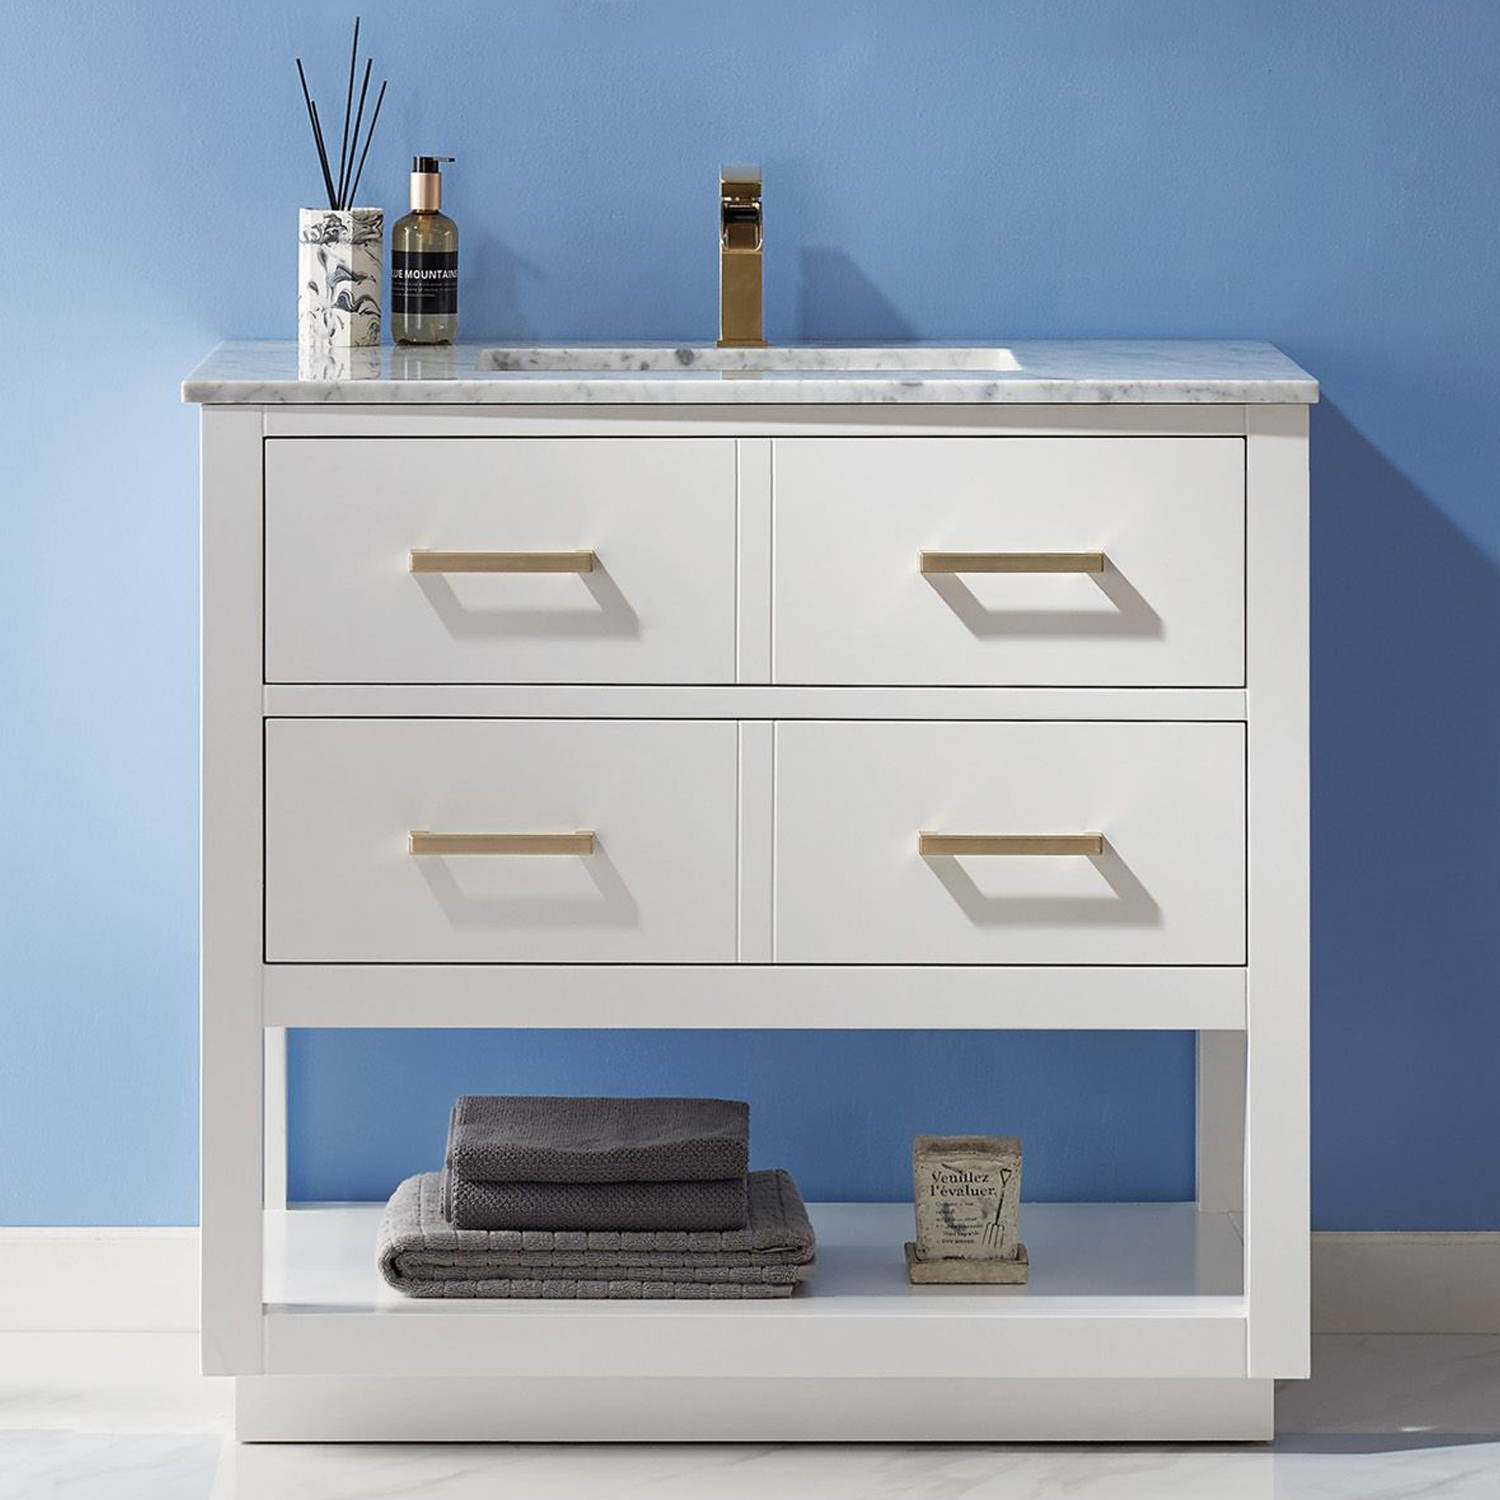 "Issac Edwards Collection 36"" Single Bathroom Vanity Set in White and Carrara White Marble Countertop with Mirror Option"